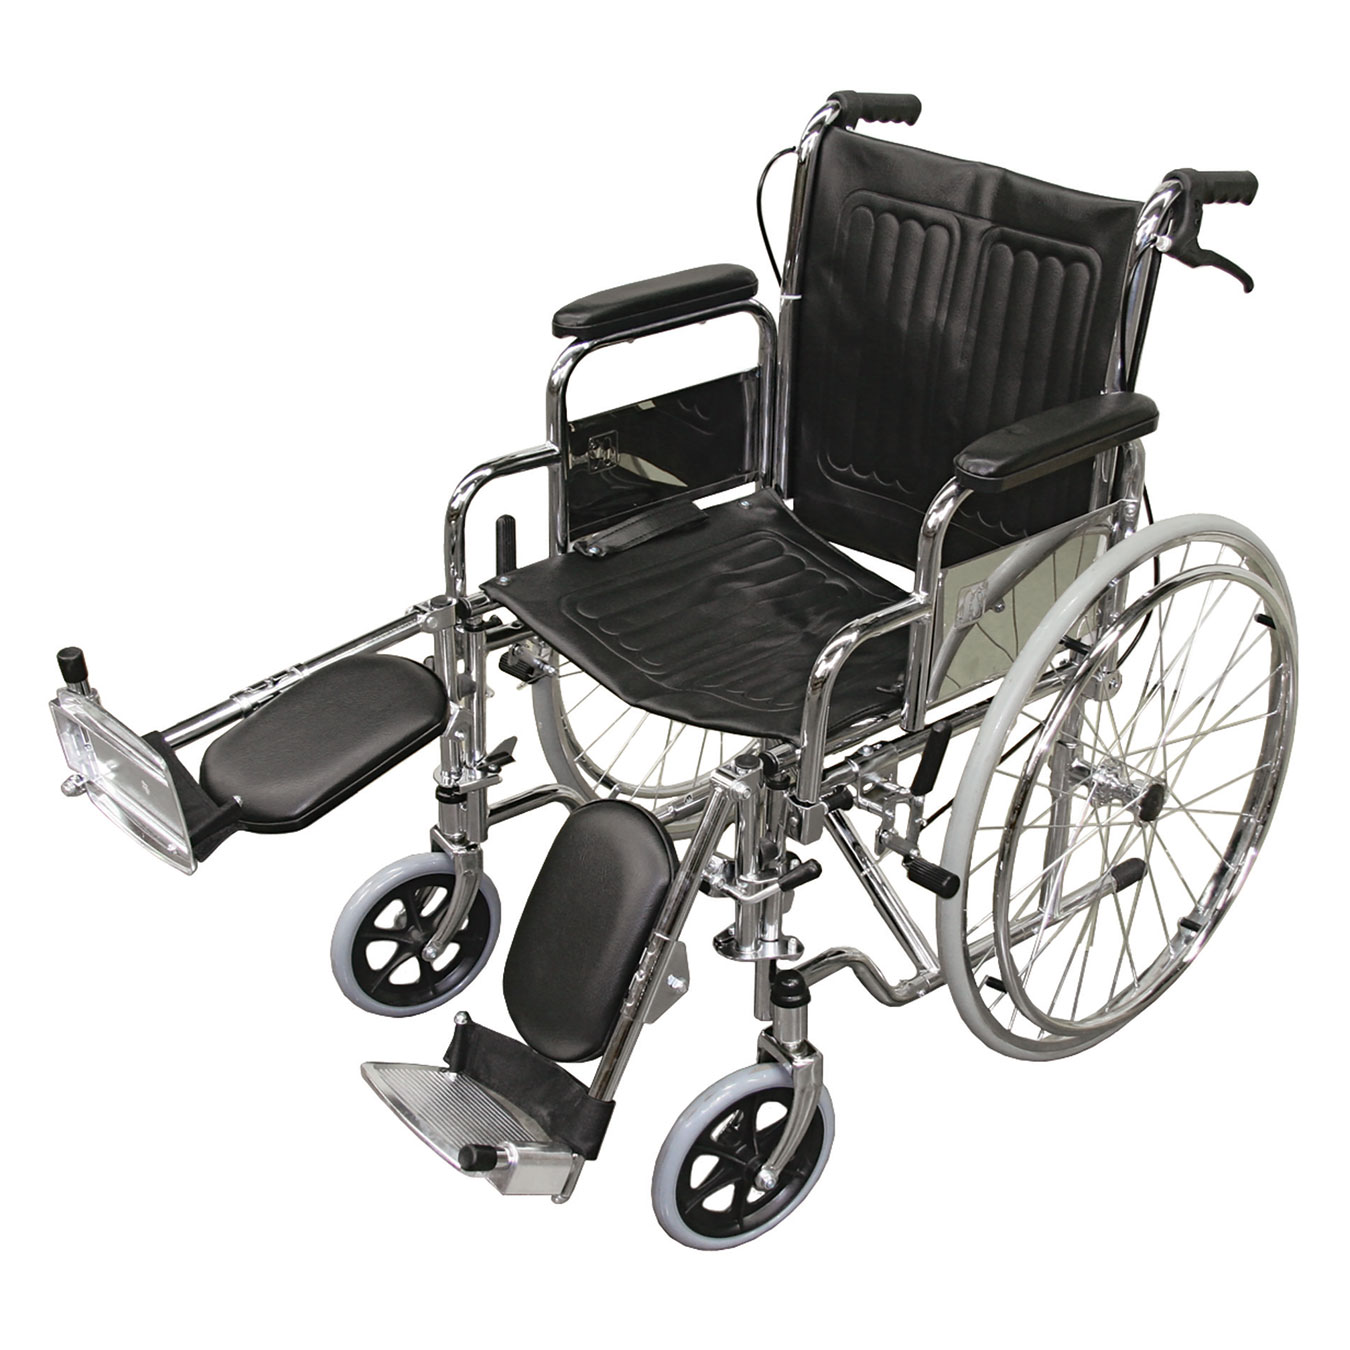 Wheelchair with Elevating Leg Rest | AxisHealth